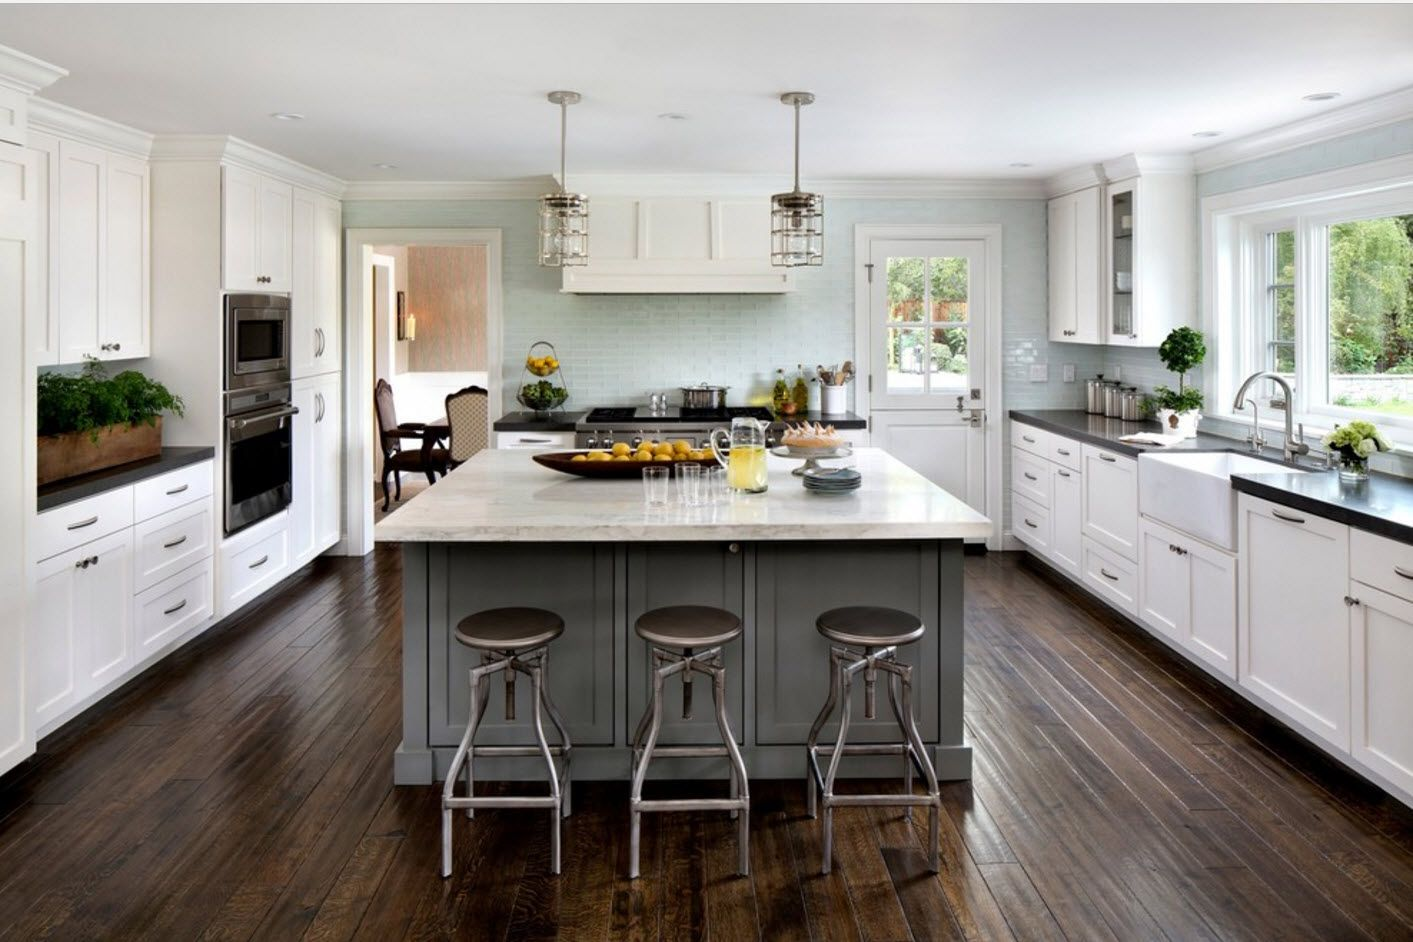 In a bright and spacious kitchen